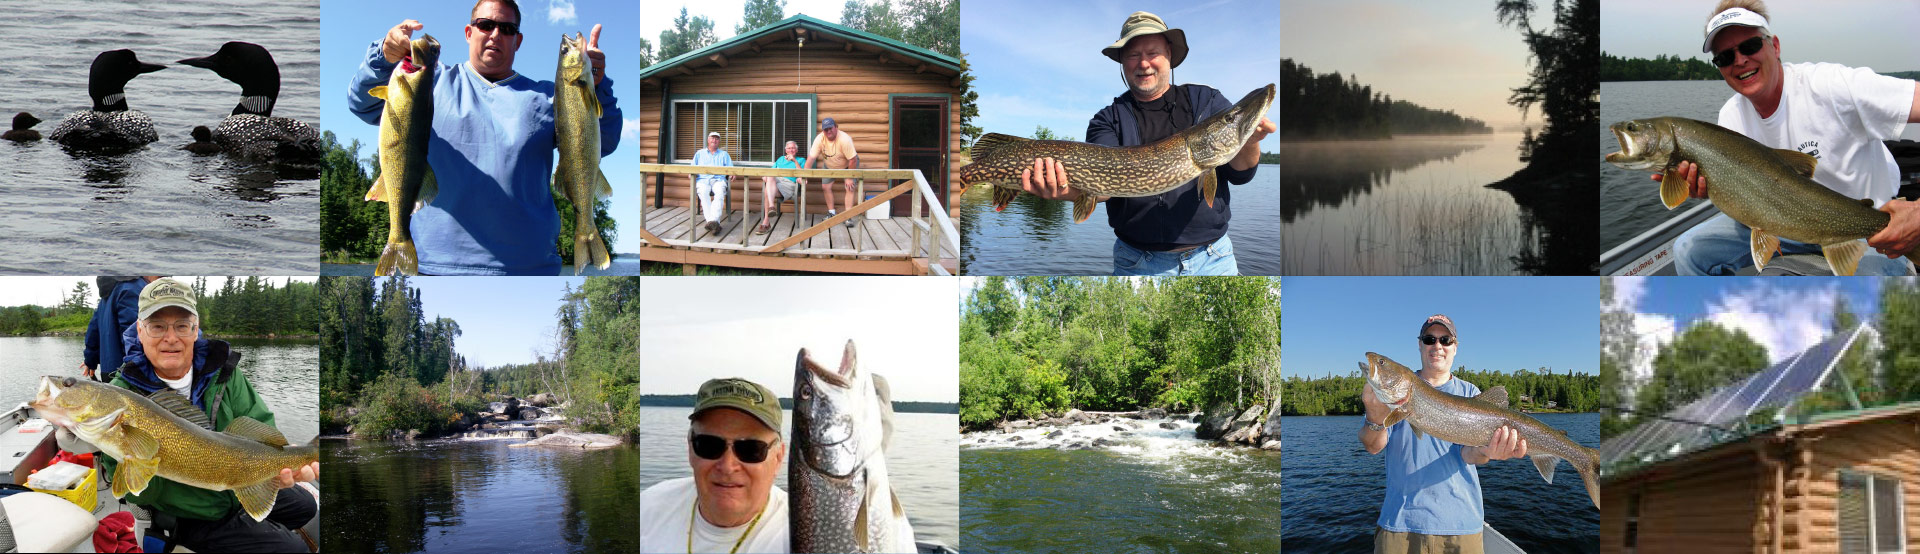 Collage of Fish, Guests, Cabins and More